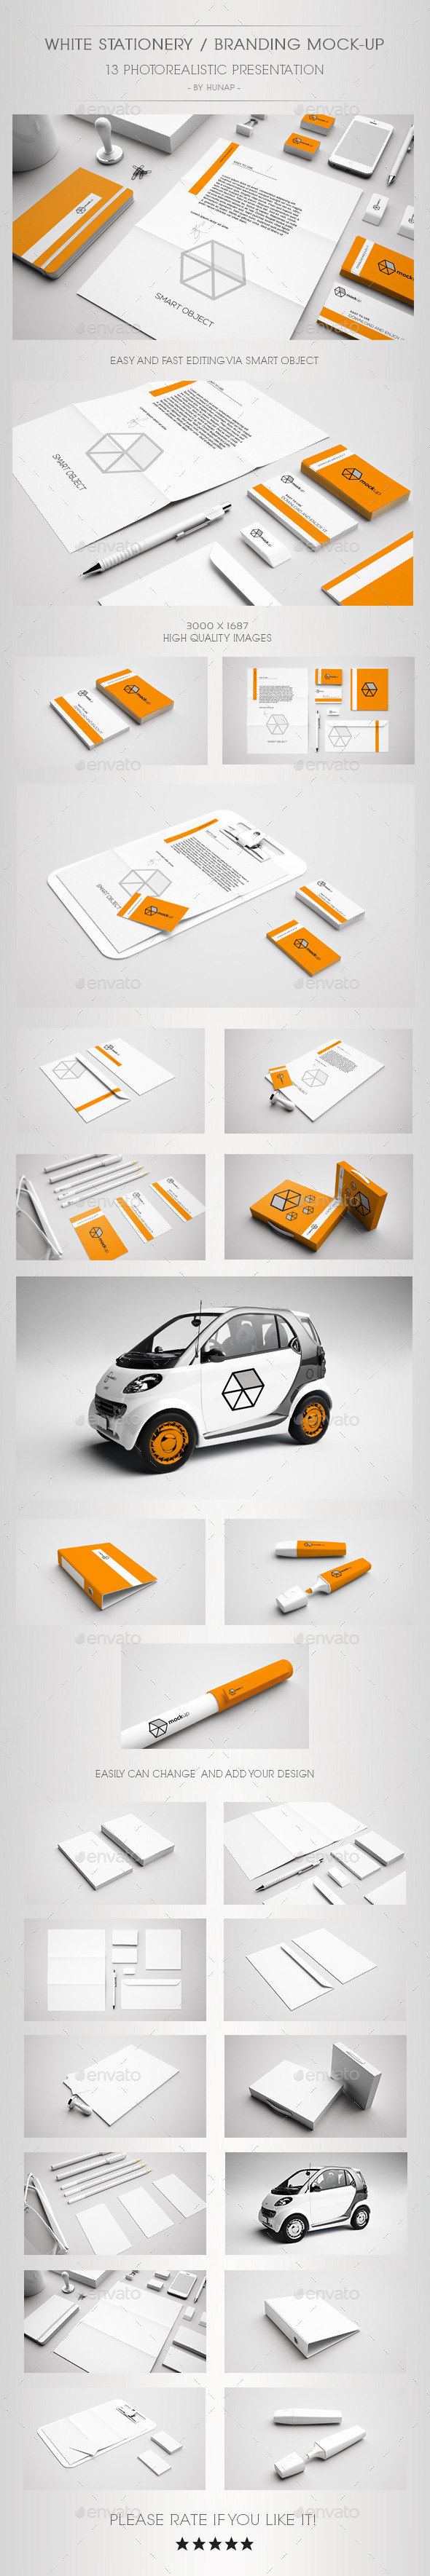 GraphicRiver White Stationery Branding Mock Up 8972646